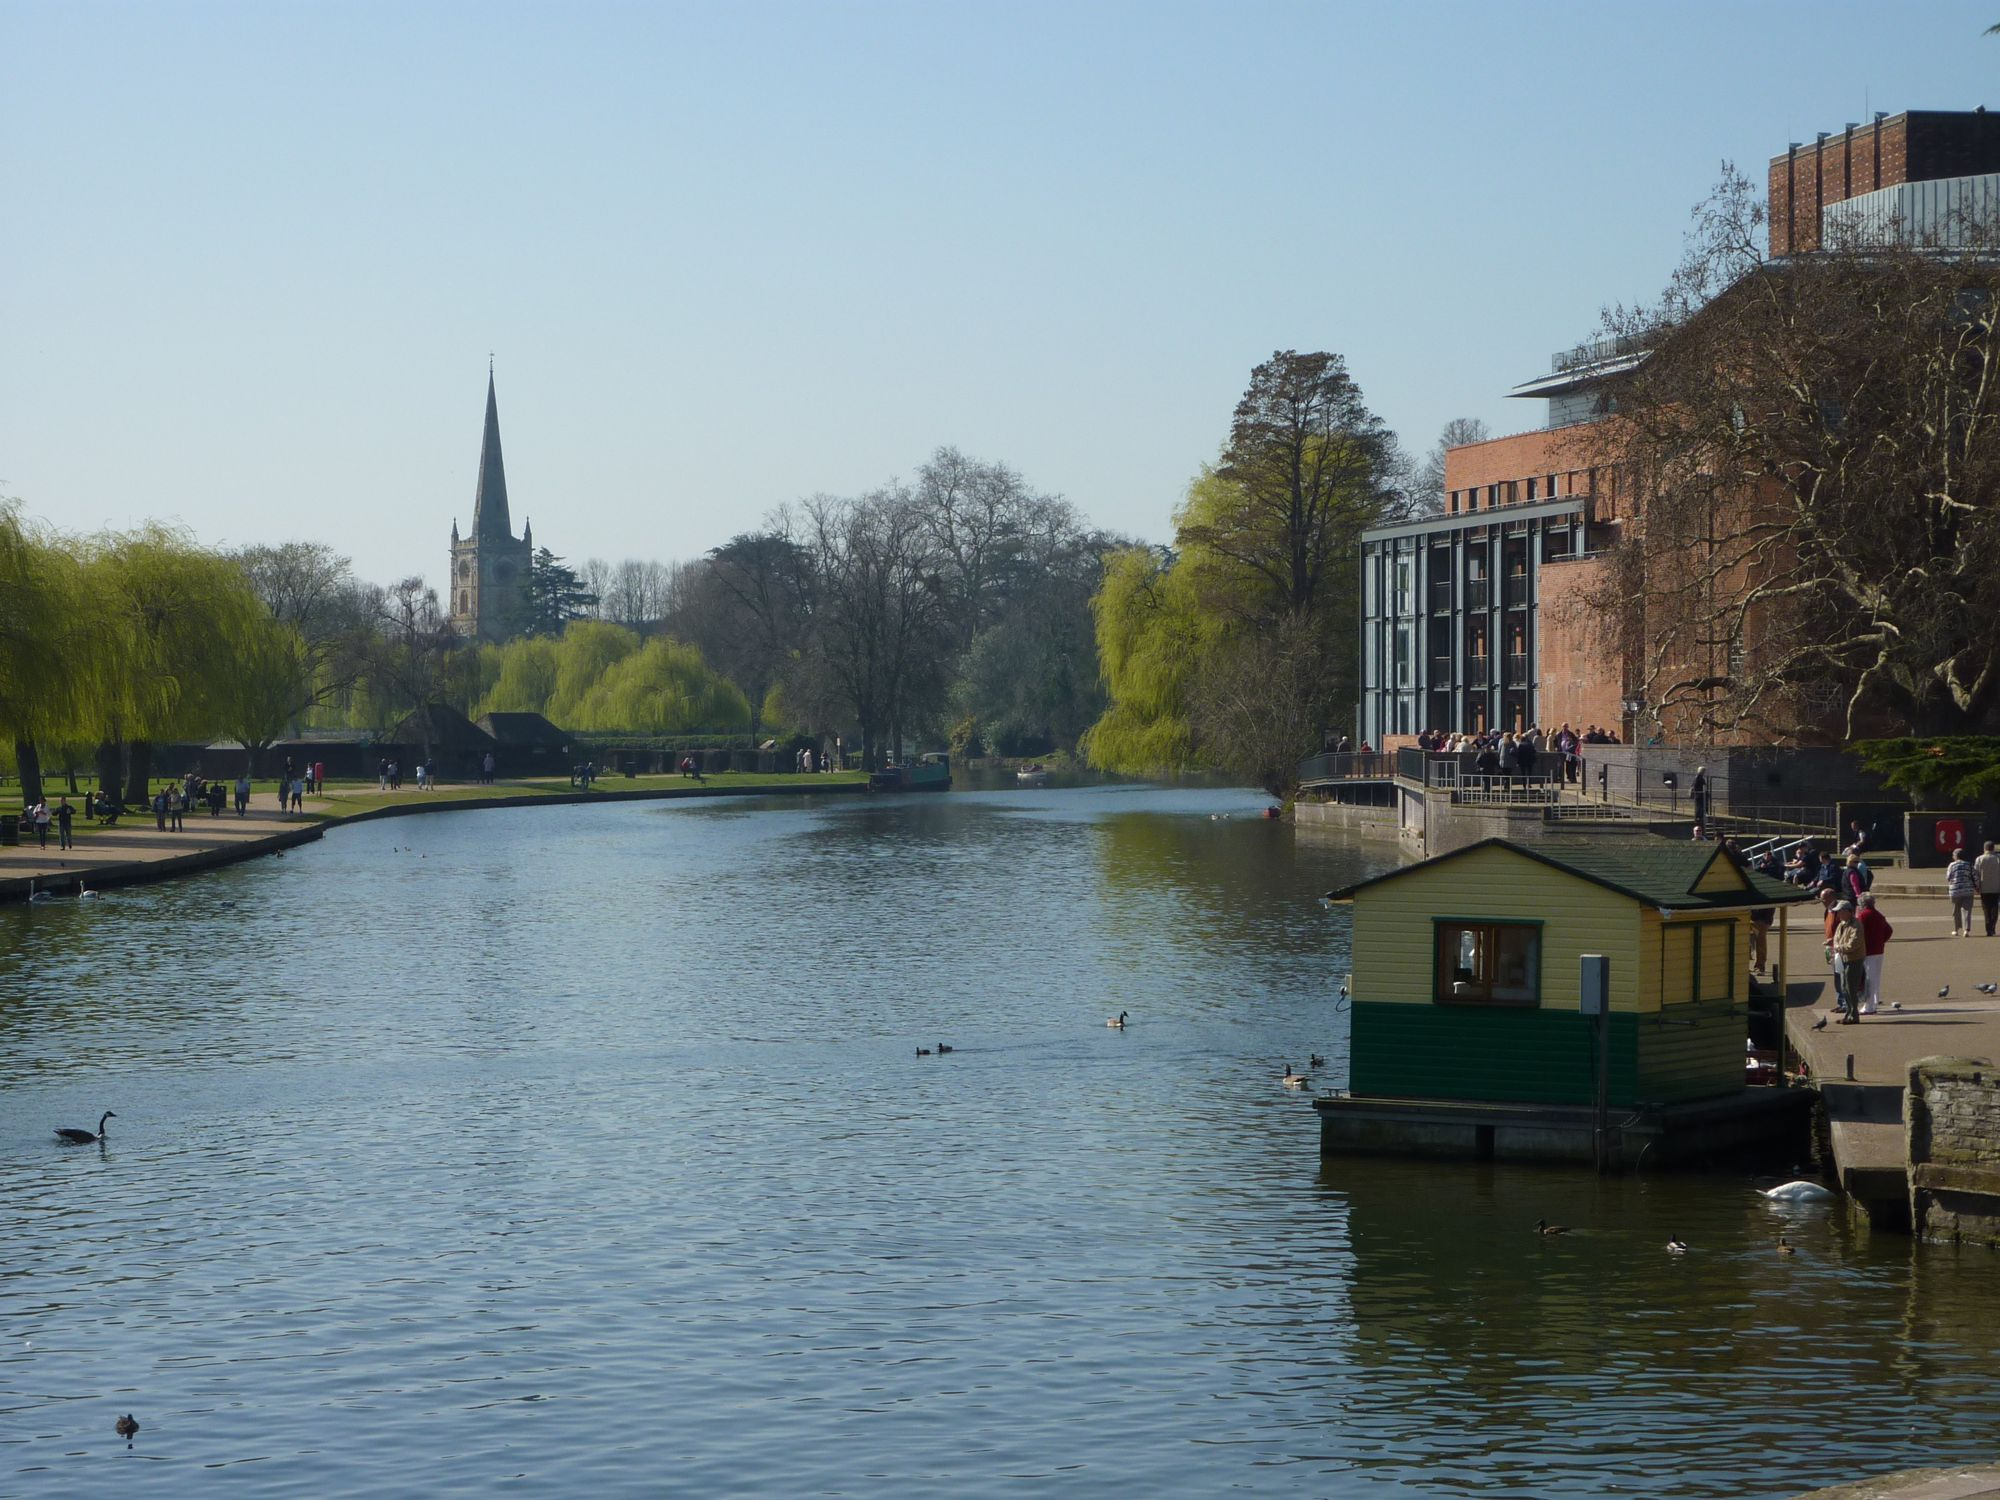 Hotels, B&Bs & Self-Catering in Stratford-upon-Avon